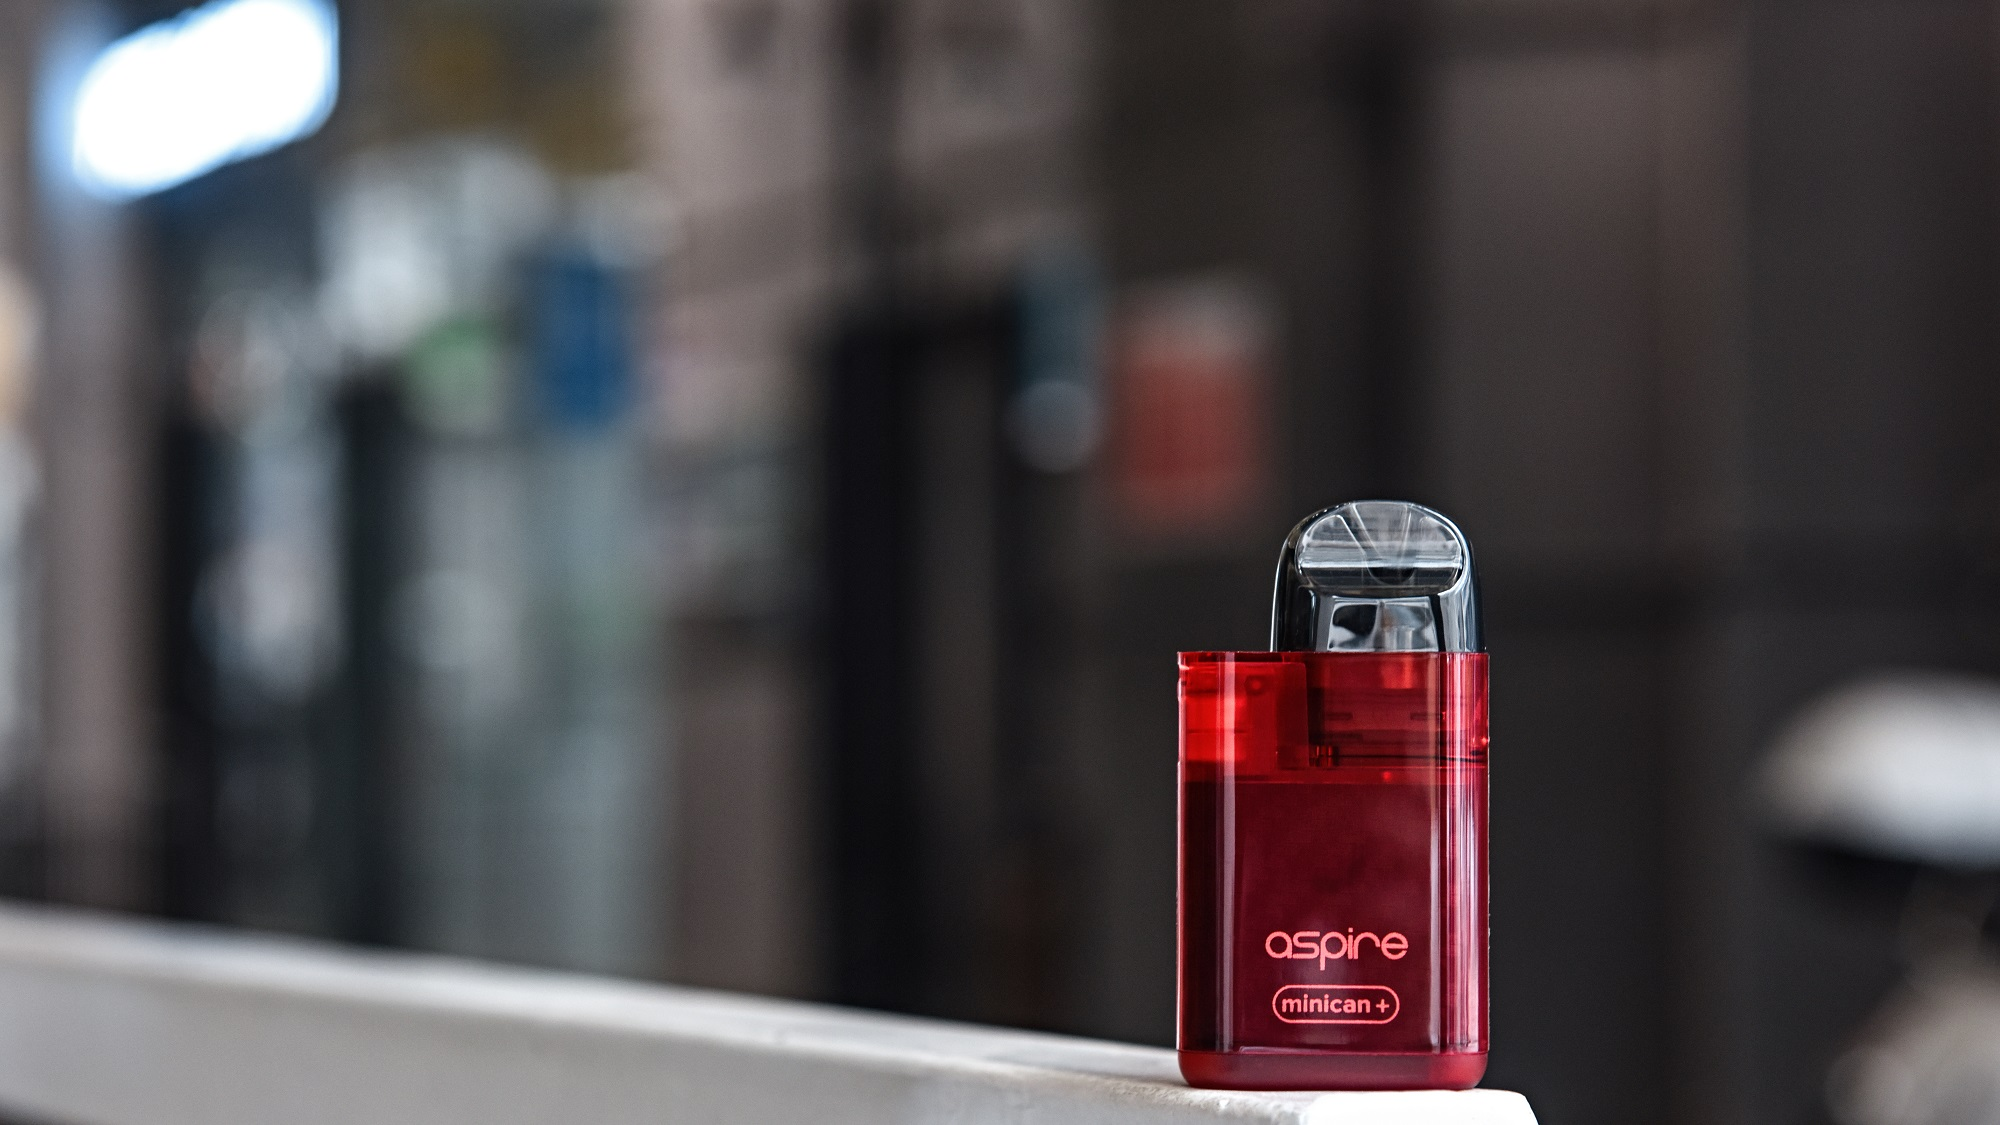 A red Aspire Minican+